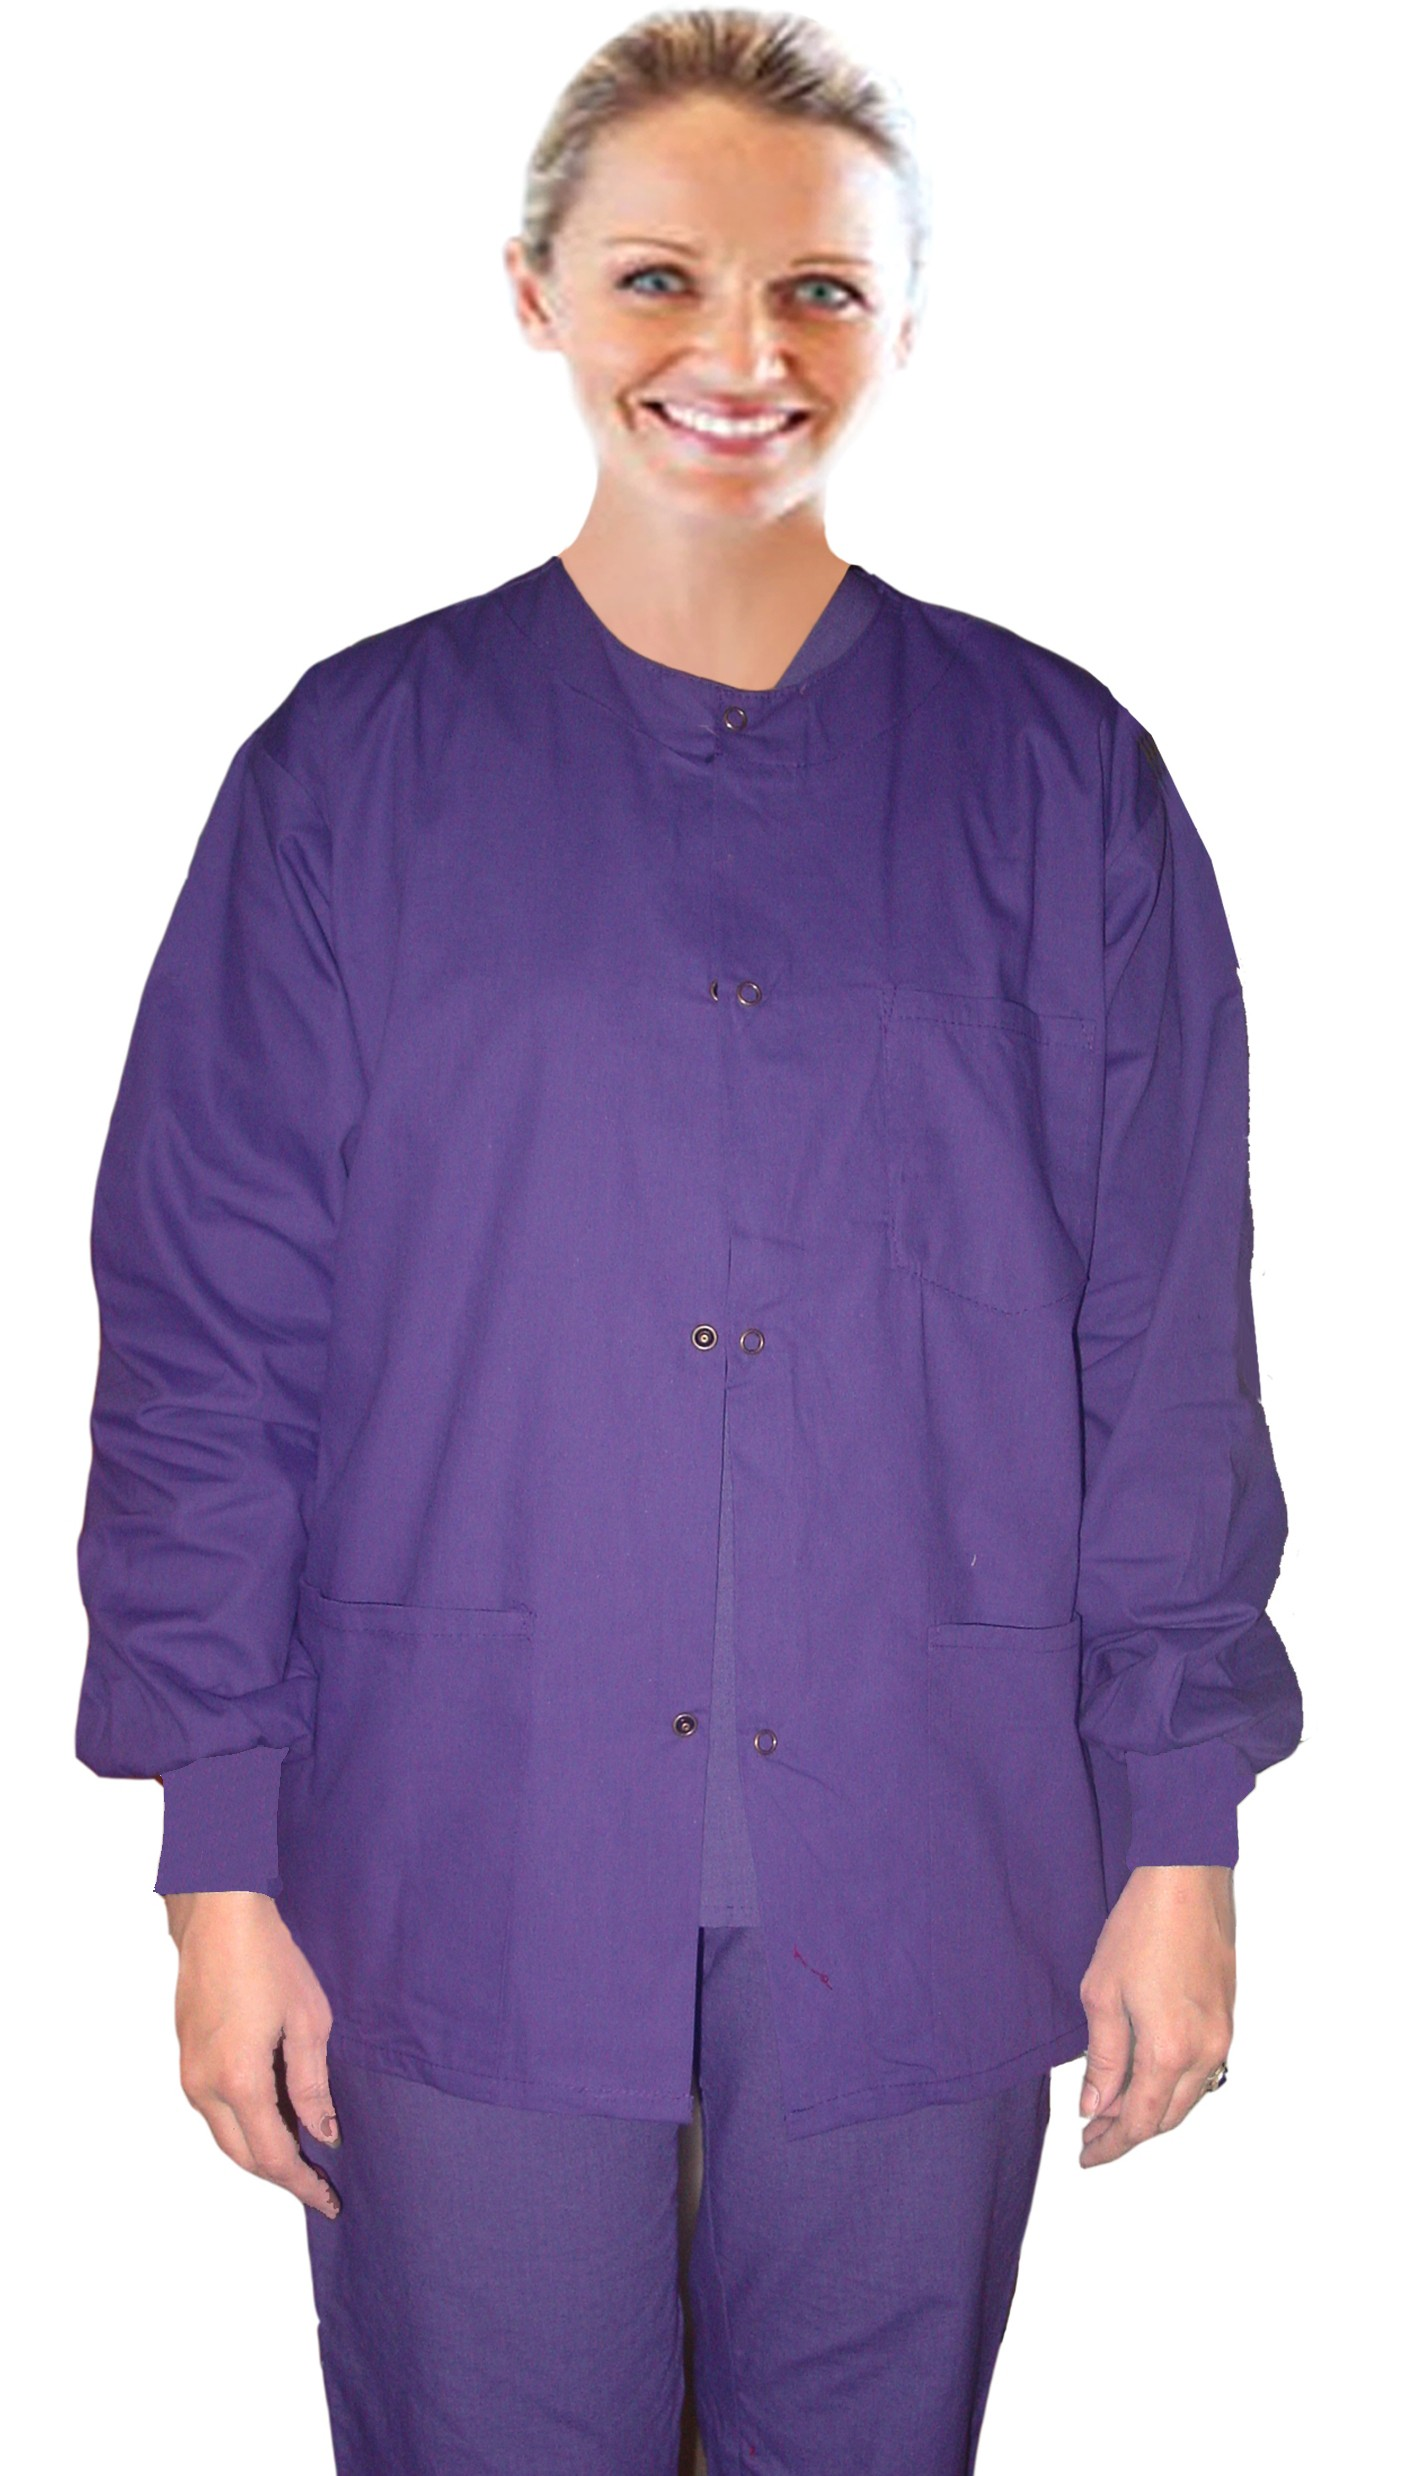 Clearance jacket 3 pocket solid unisex full sleeve with rib snap buttons in Light Royal color